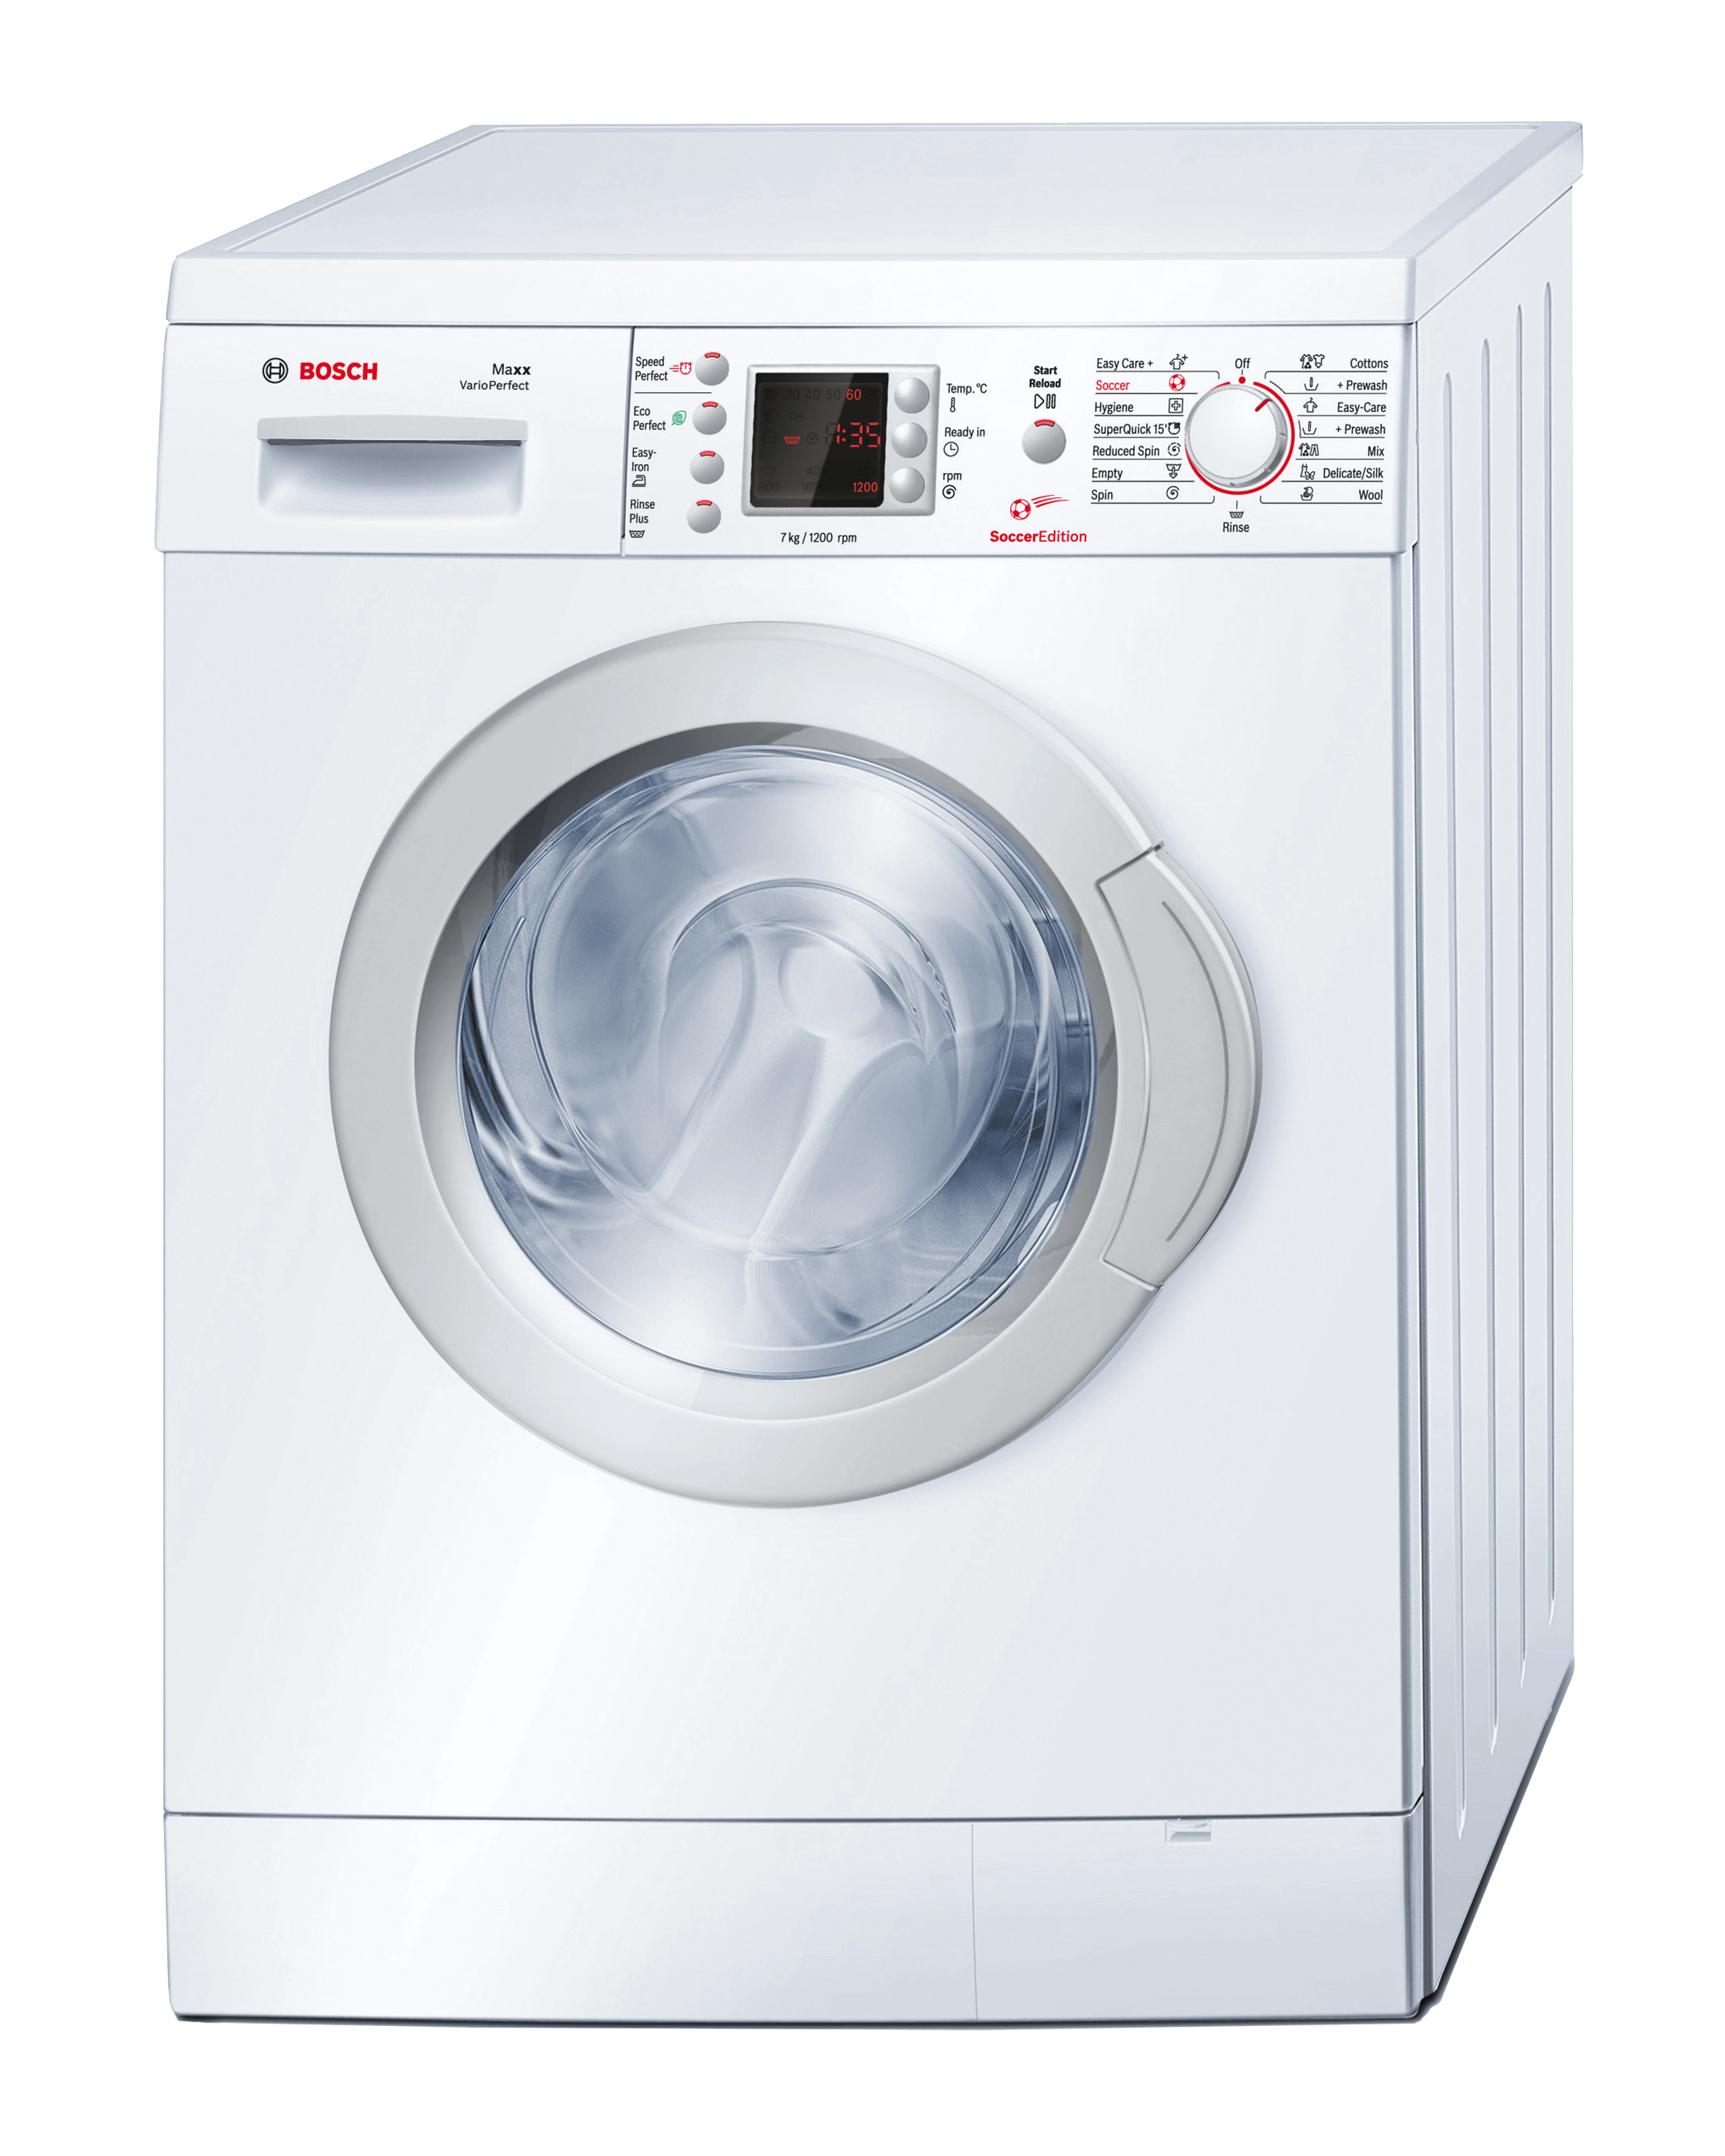 Инструкция Bosch Avantixx 6 3d Washing